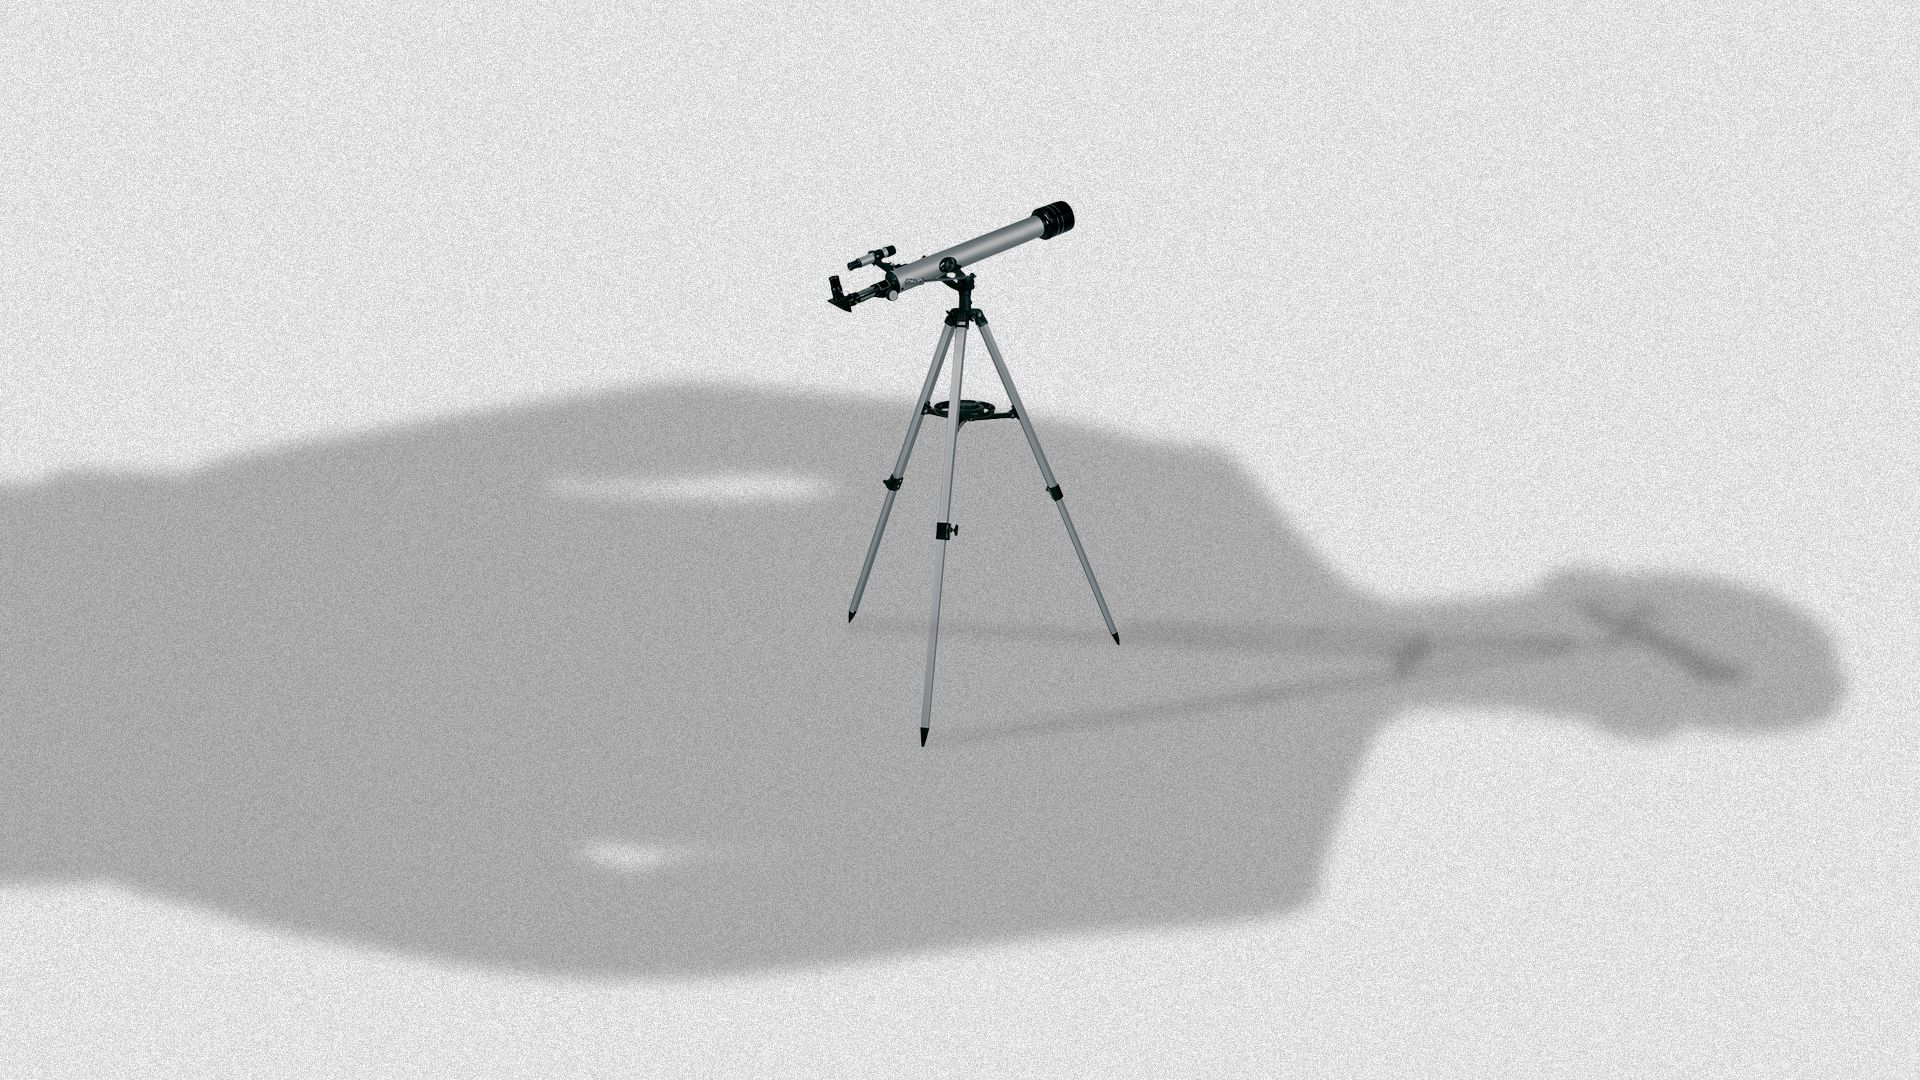 Illustration of a telescope being overshadowed by a person's outline.